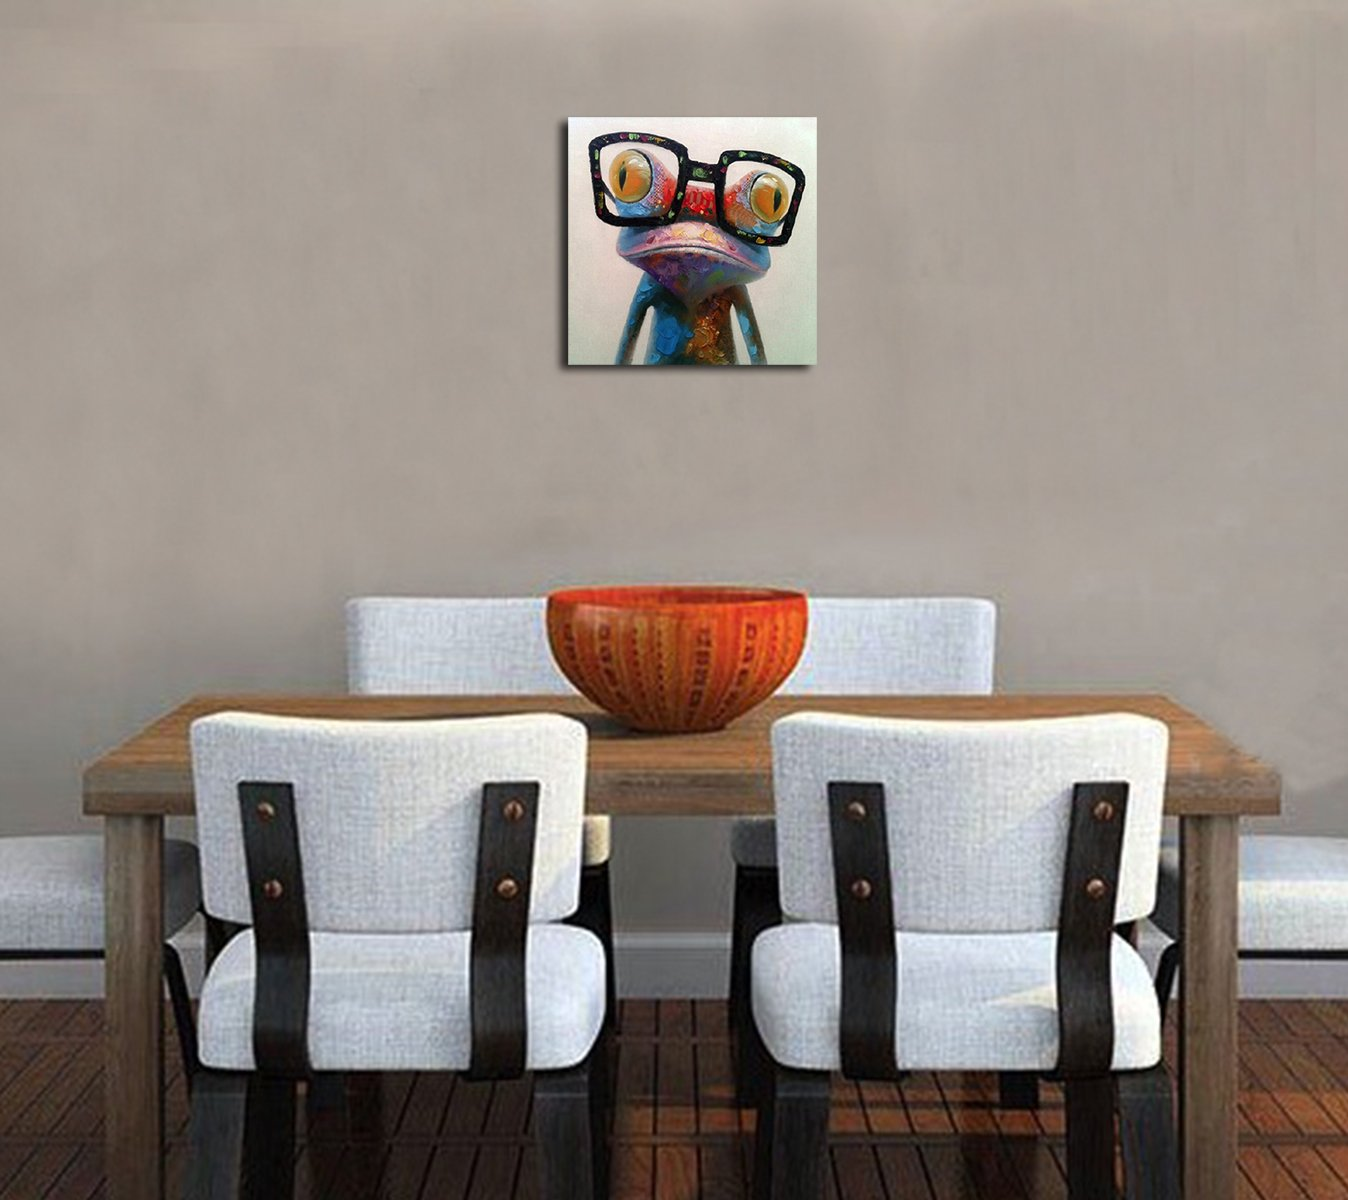 Fokenzary Hand Painted Oil Painting Pop Cute Frog with Glasses on Canvas Wall Art Framed Ready to Hang